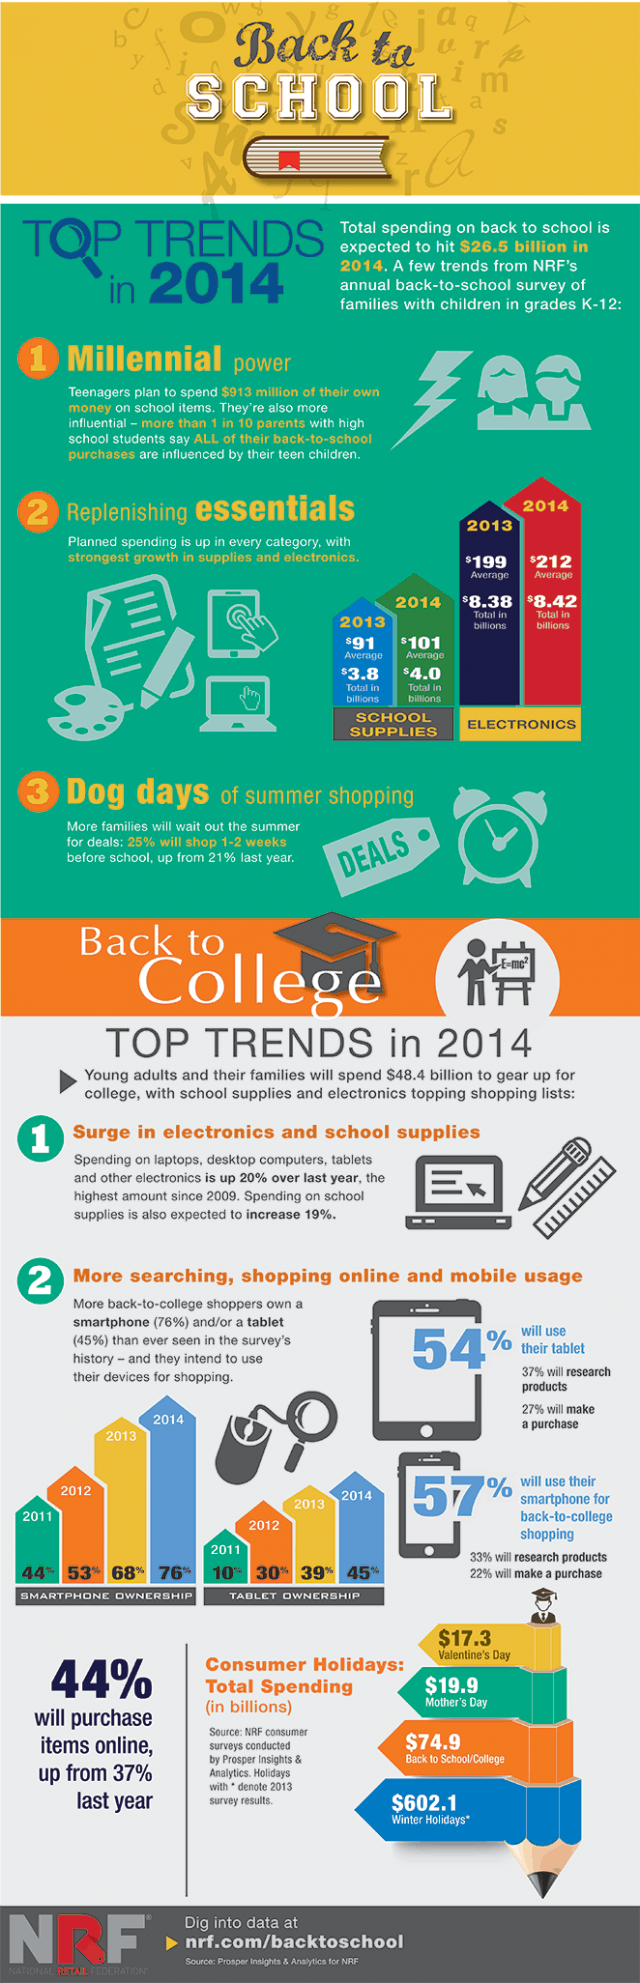 Back to School Trends Infographic